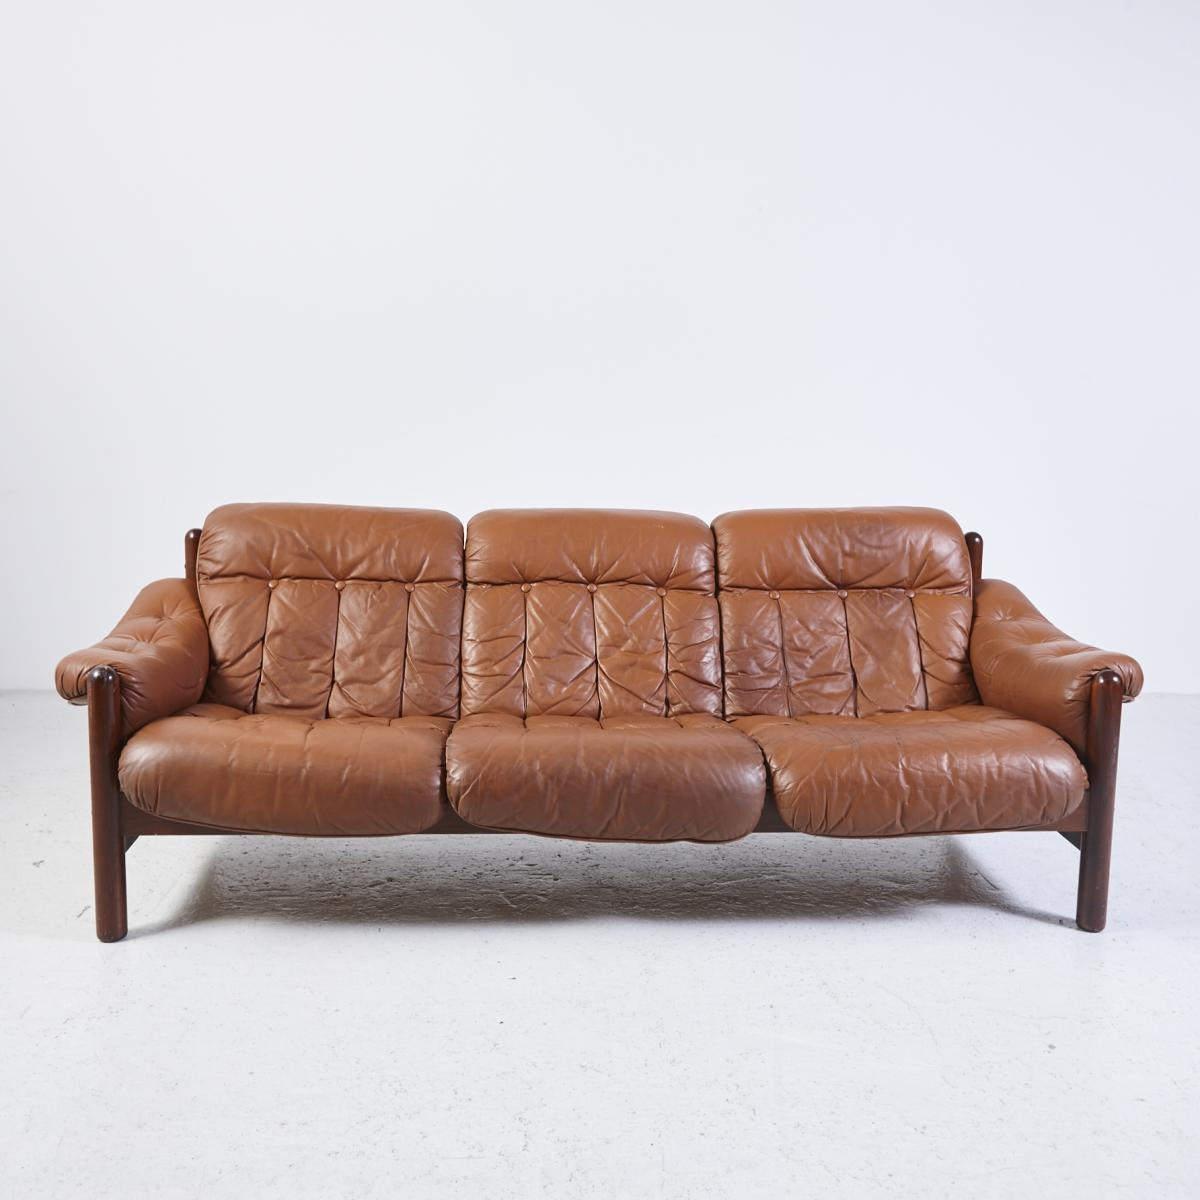 Vintage 3-Seater Leather Sofa With Teak Frame For Sale At Pamono with regard to 3 Seater Leather Sofas